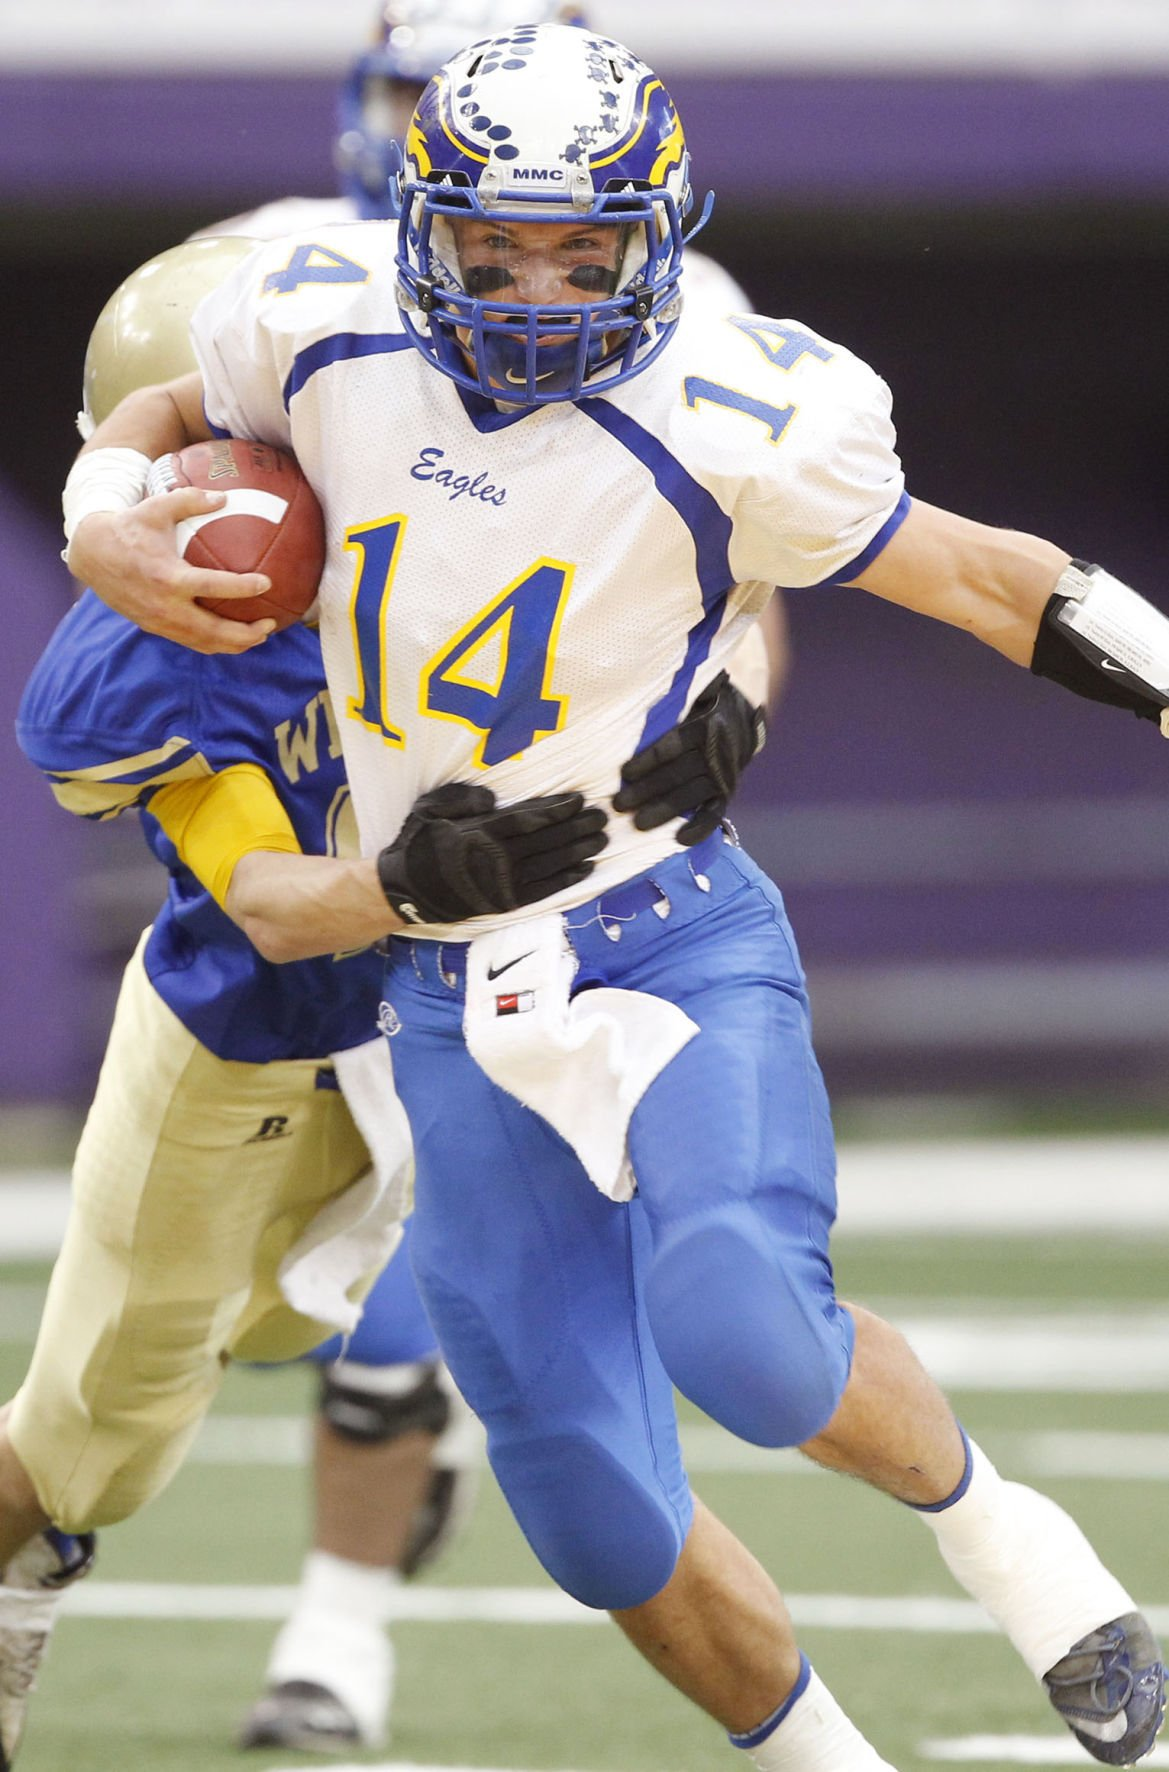 Eagles advance to state title game   Football   siouxcityjournal.com